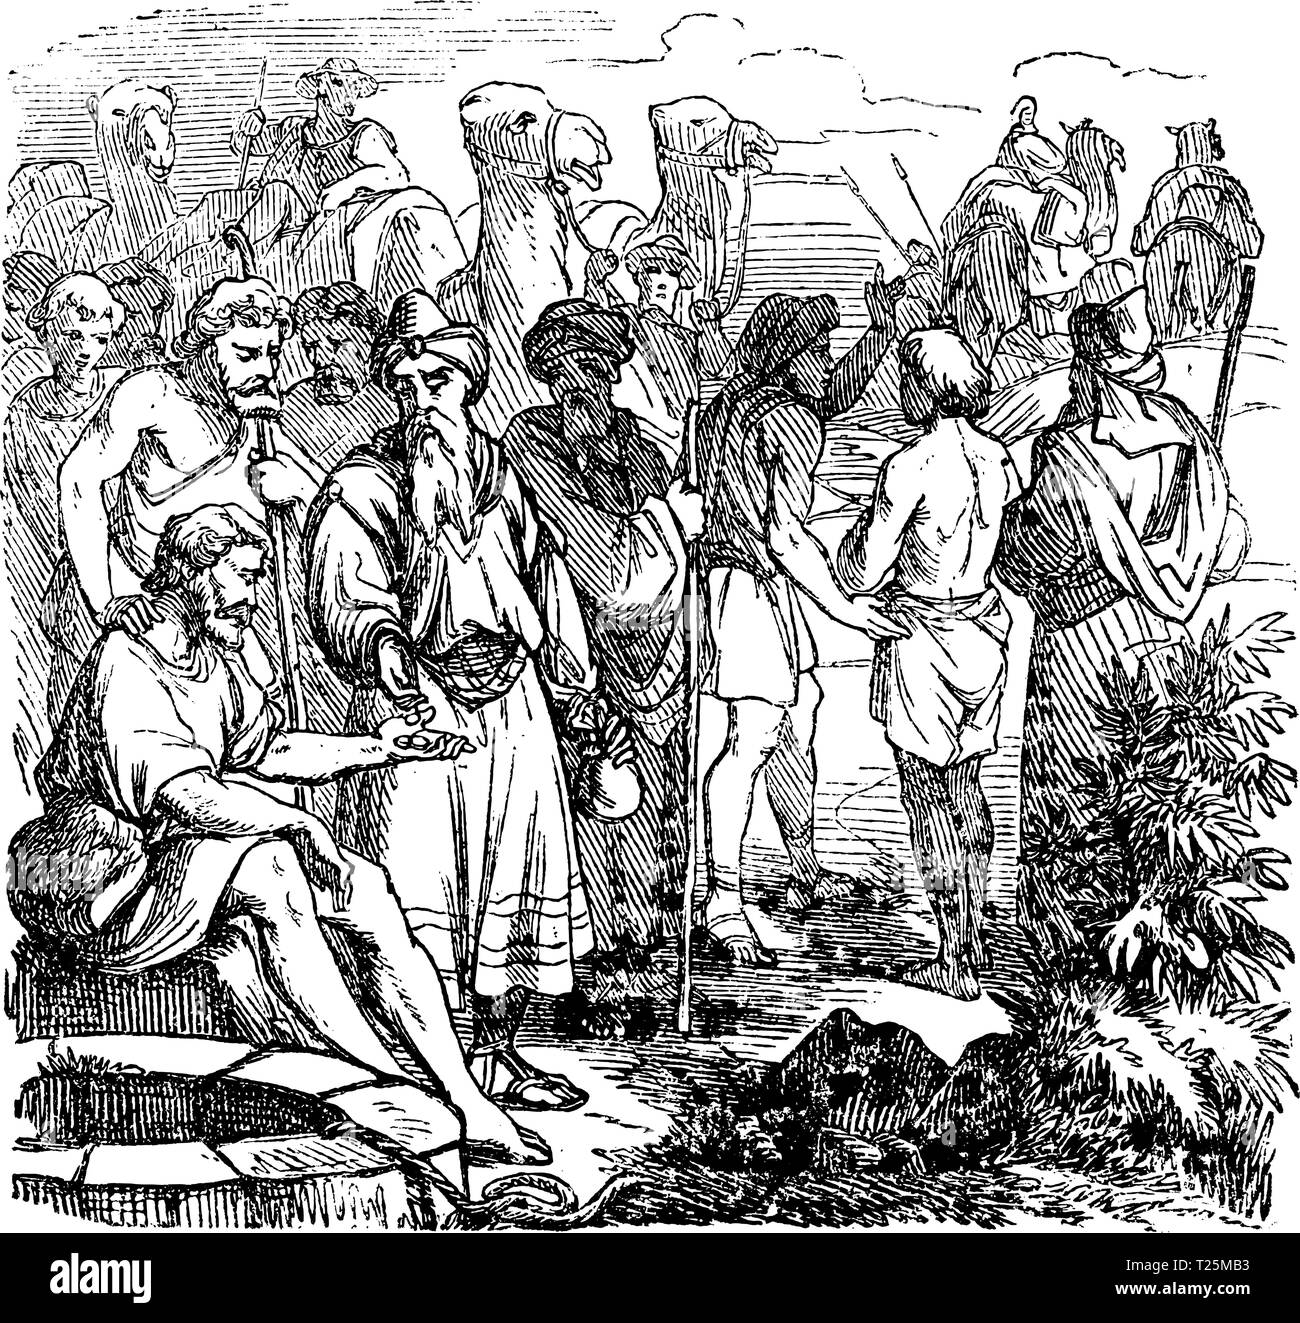 Vintage antique illustration and line drawing or engraving of biblical story about Joseph sold in to slavery by his brothers. From Biblische Geschichte des alten und neuen Testaments, Germany 1859. Genesis 37. Stock Vector